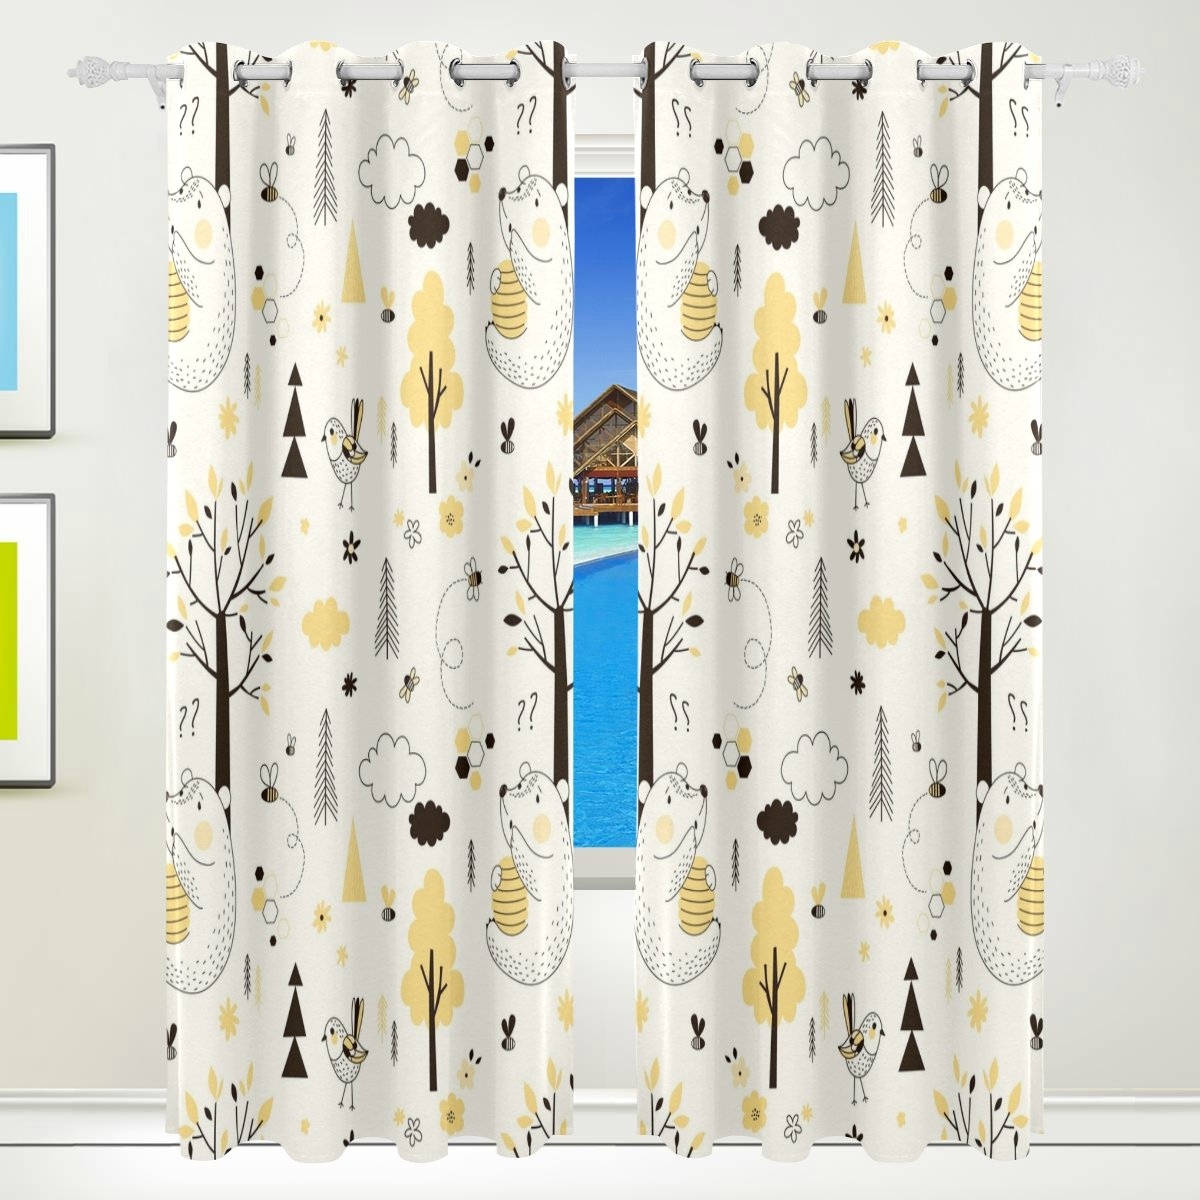 Vantaso Window Curtains 84 Inch Long Cute Forest Animal Bird Bear Yellow Beige for Kids Girls Boys Bedroom Living Room Polyester 2 Pannels